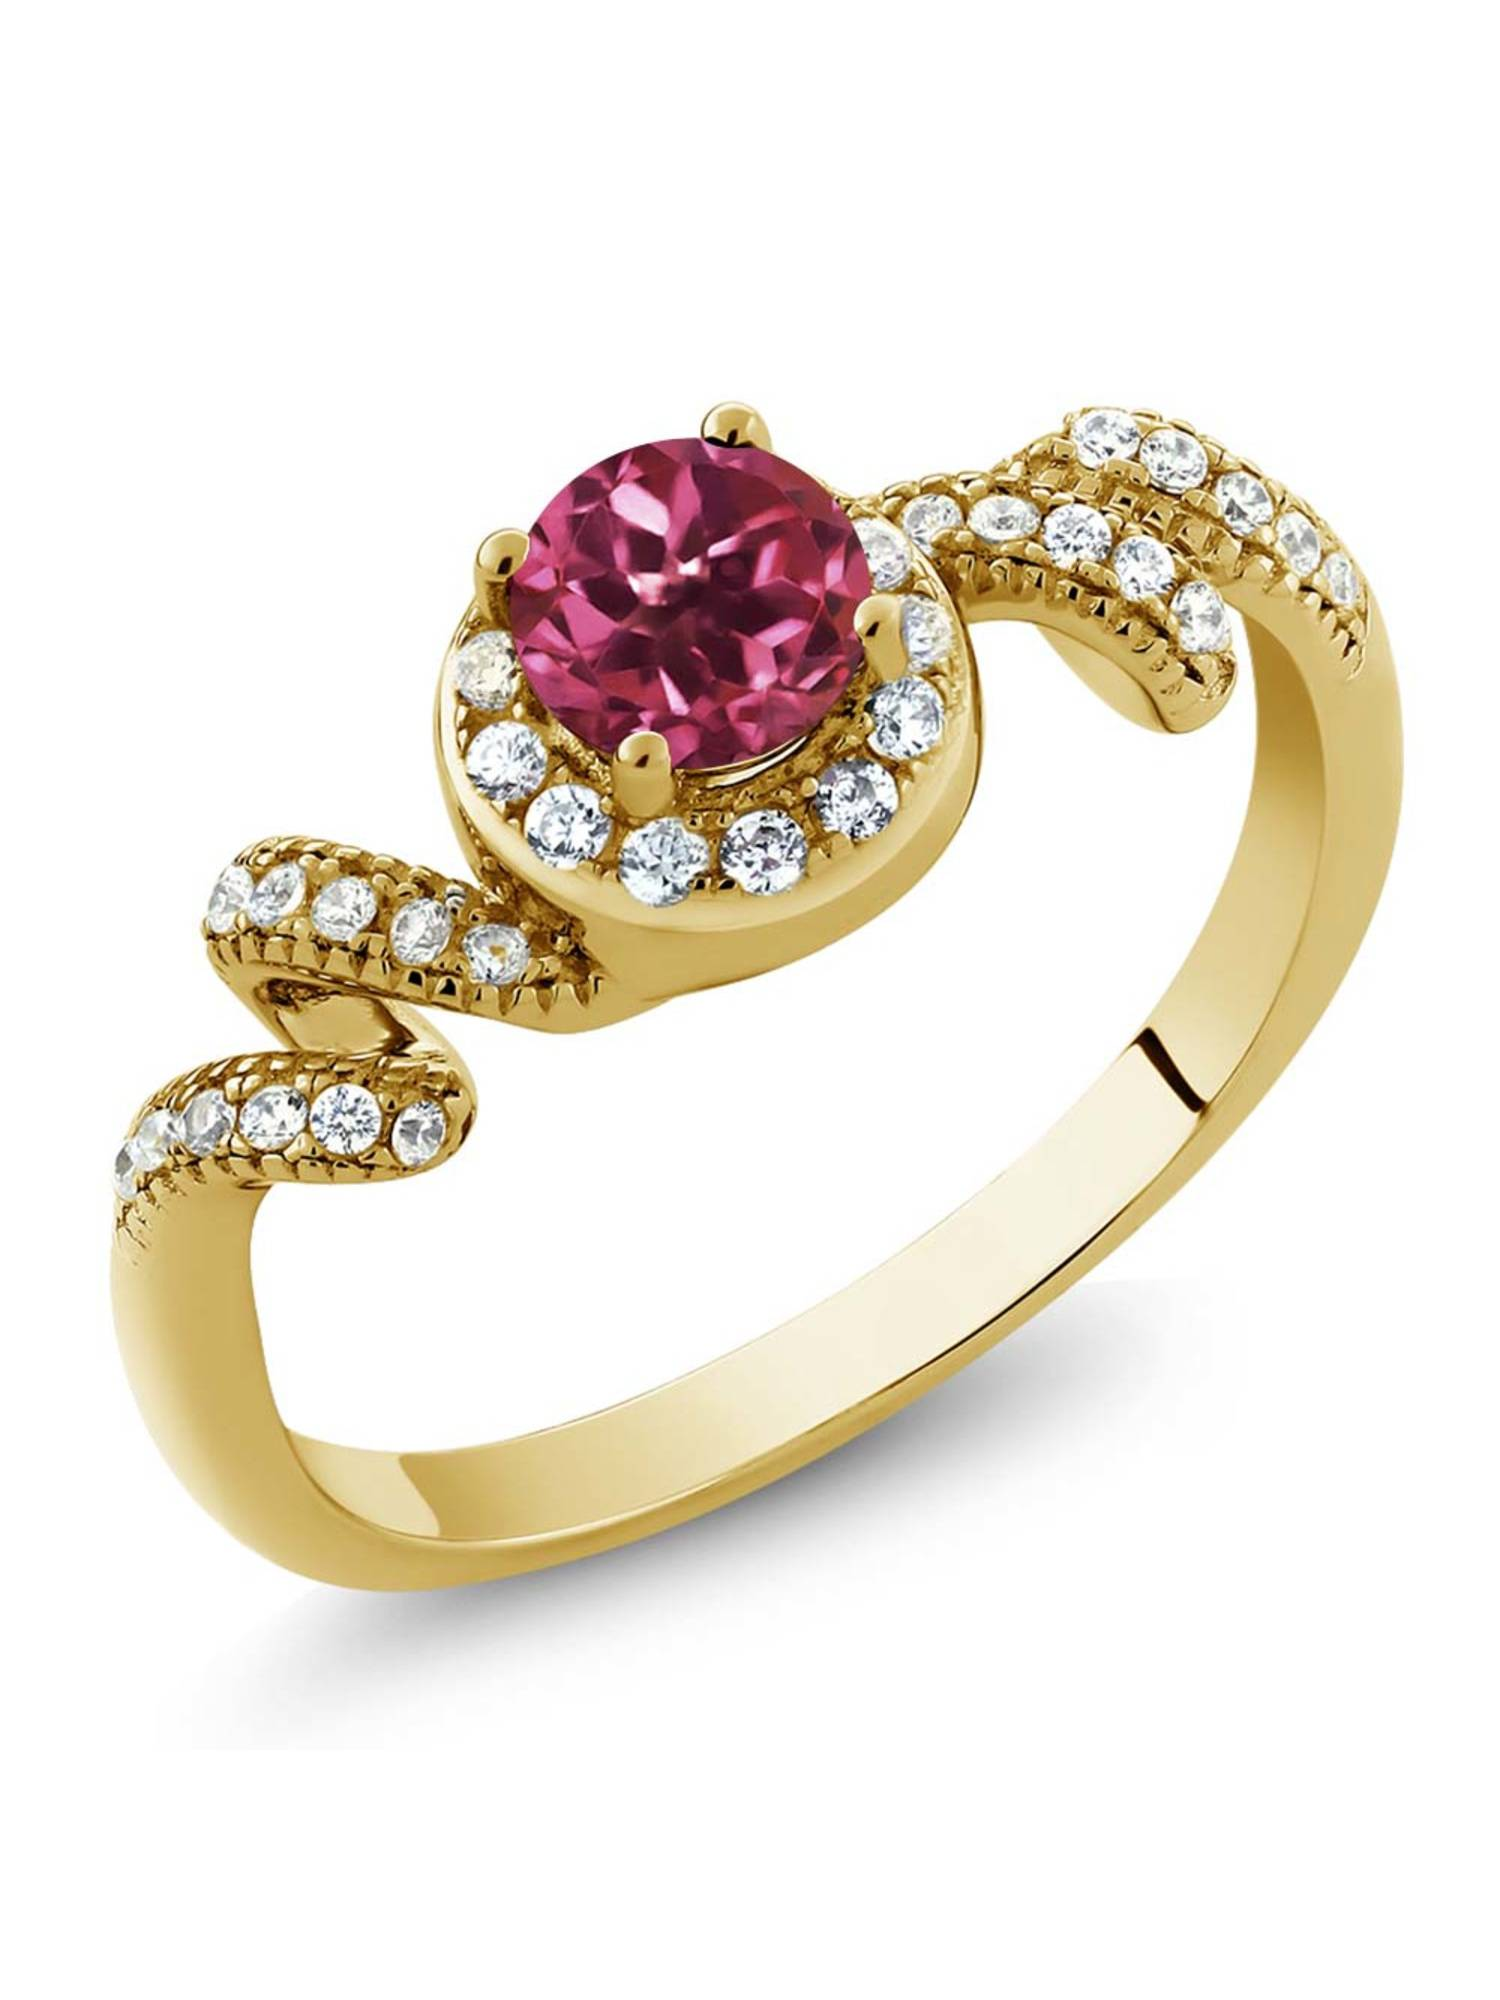 0.89 Ct Round Pink Tourmaline AA 18K Yellow Gold Plated Silver Ring by